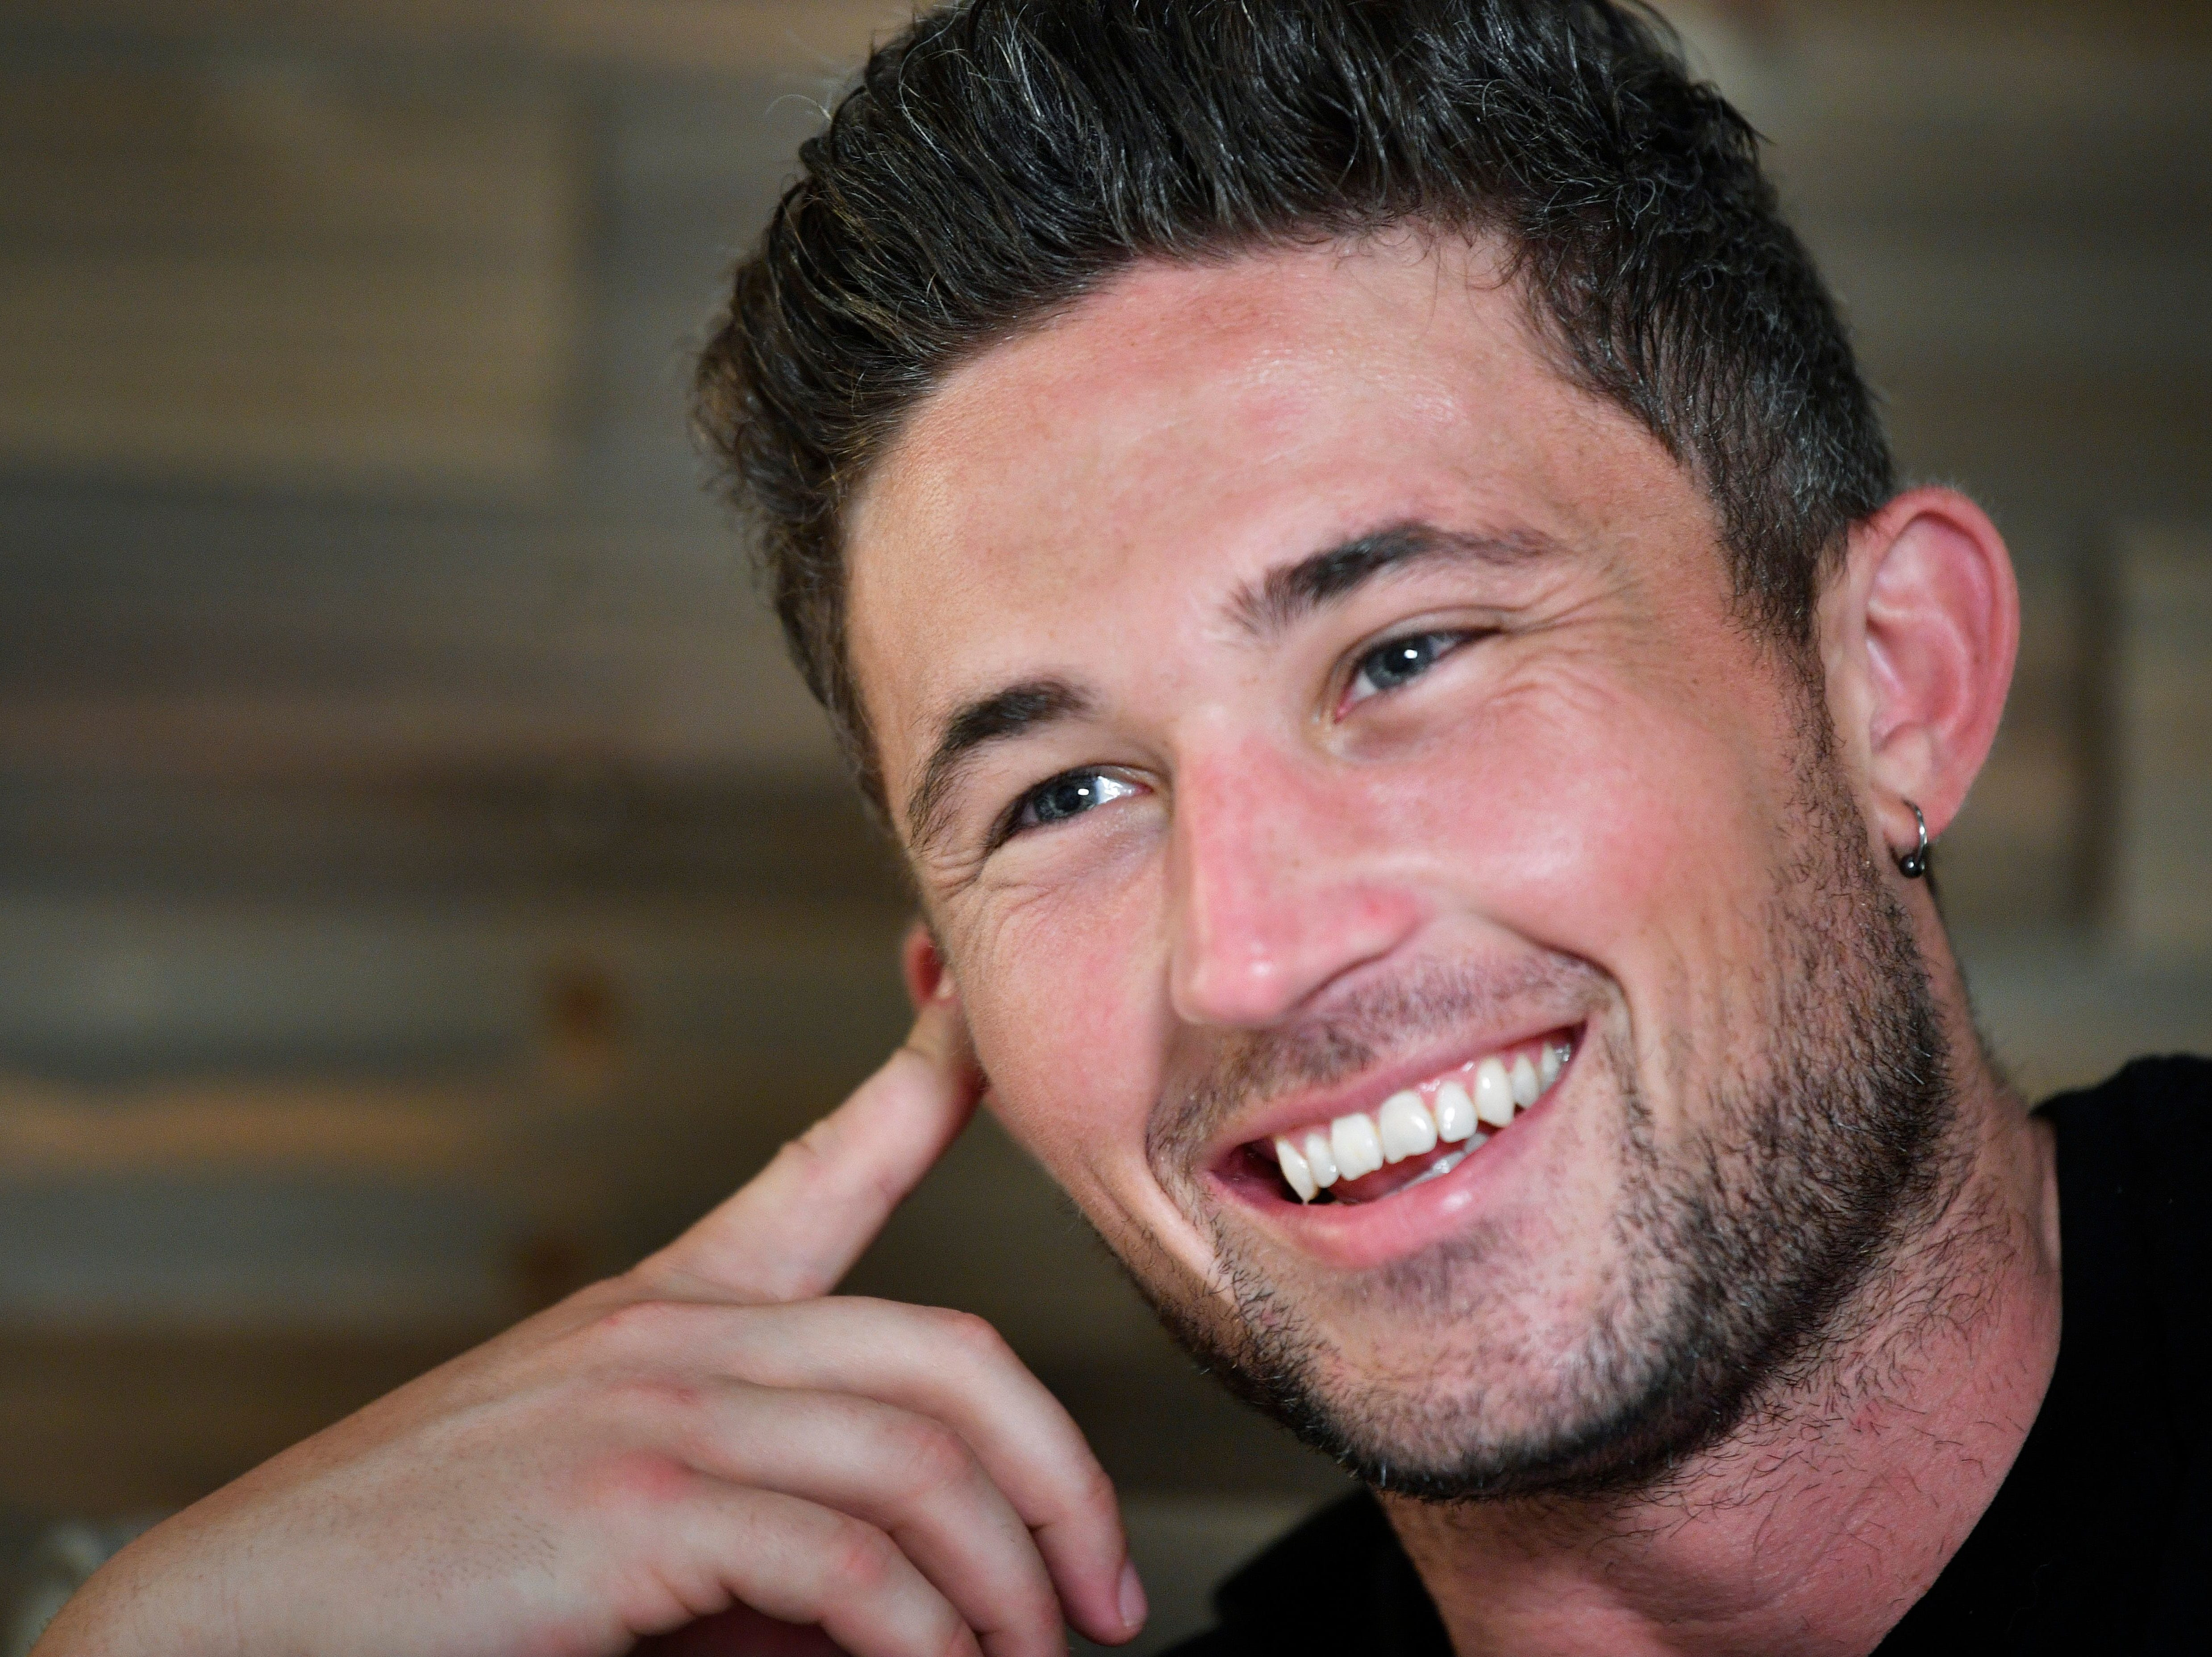 Michael Ray is scheduled to play the Chevy Riverfront Stage at CMA Fest 2019.